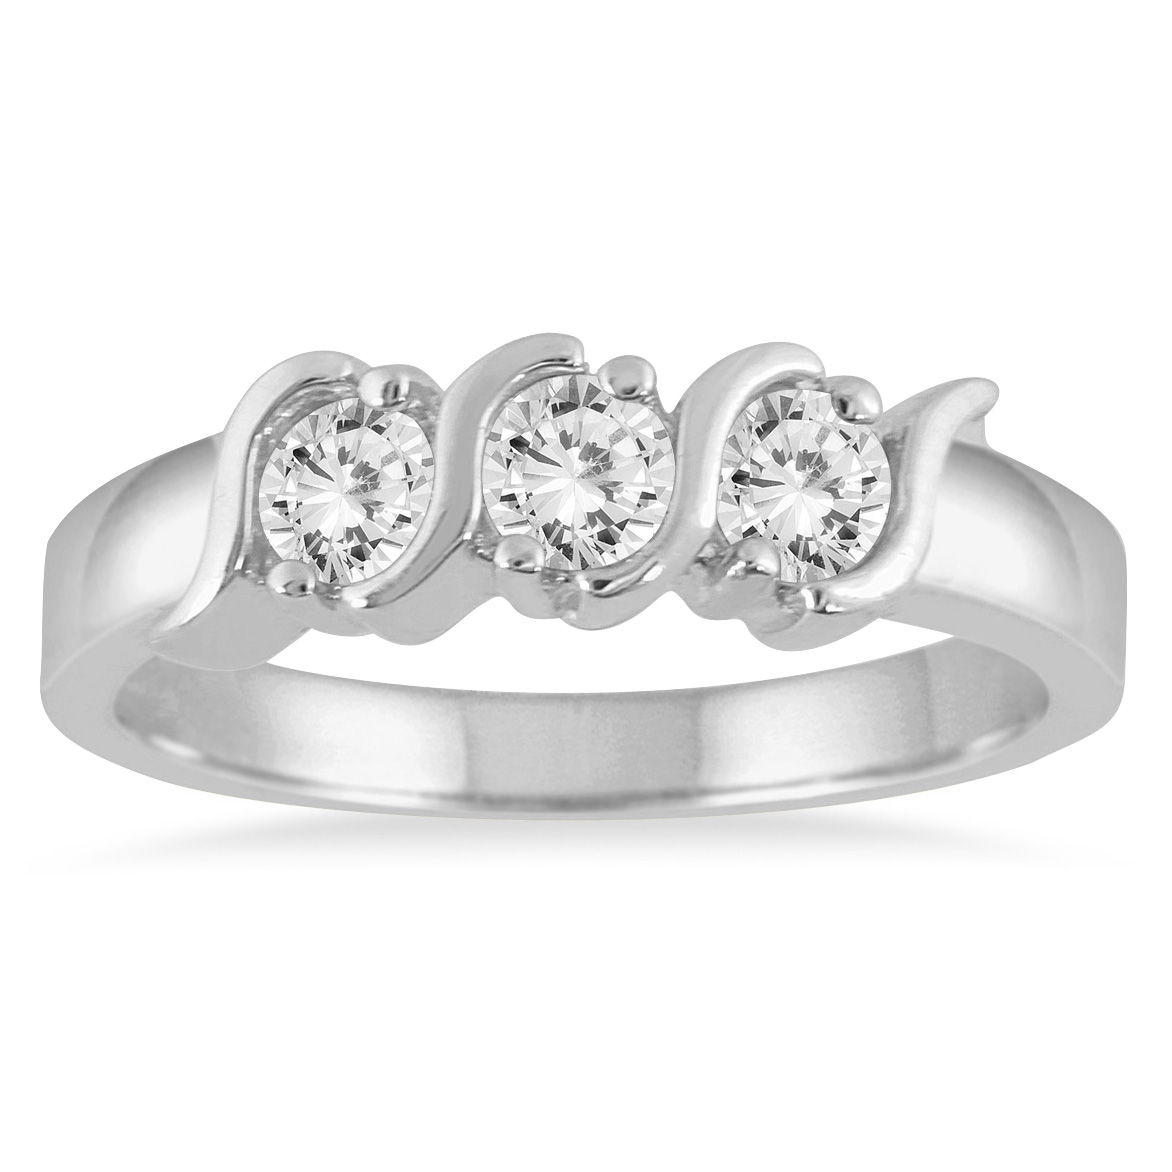 1/2 Carat TW 3 Stone S Groove Diamond Band in 10K White Gold